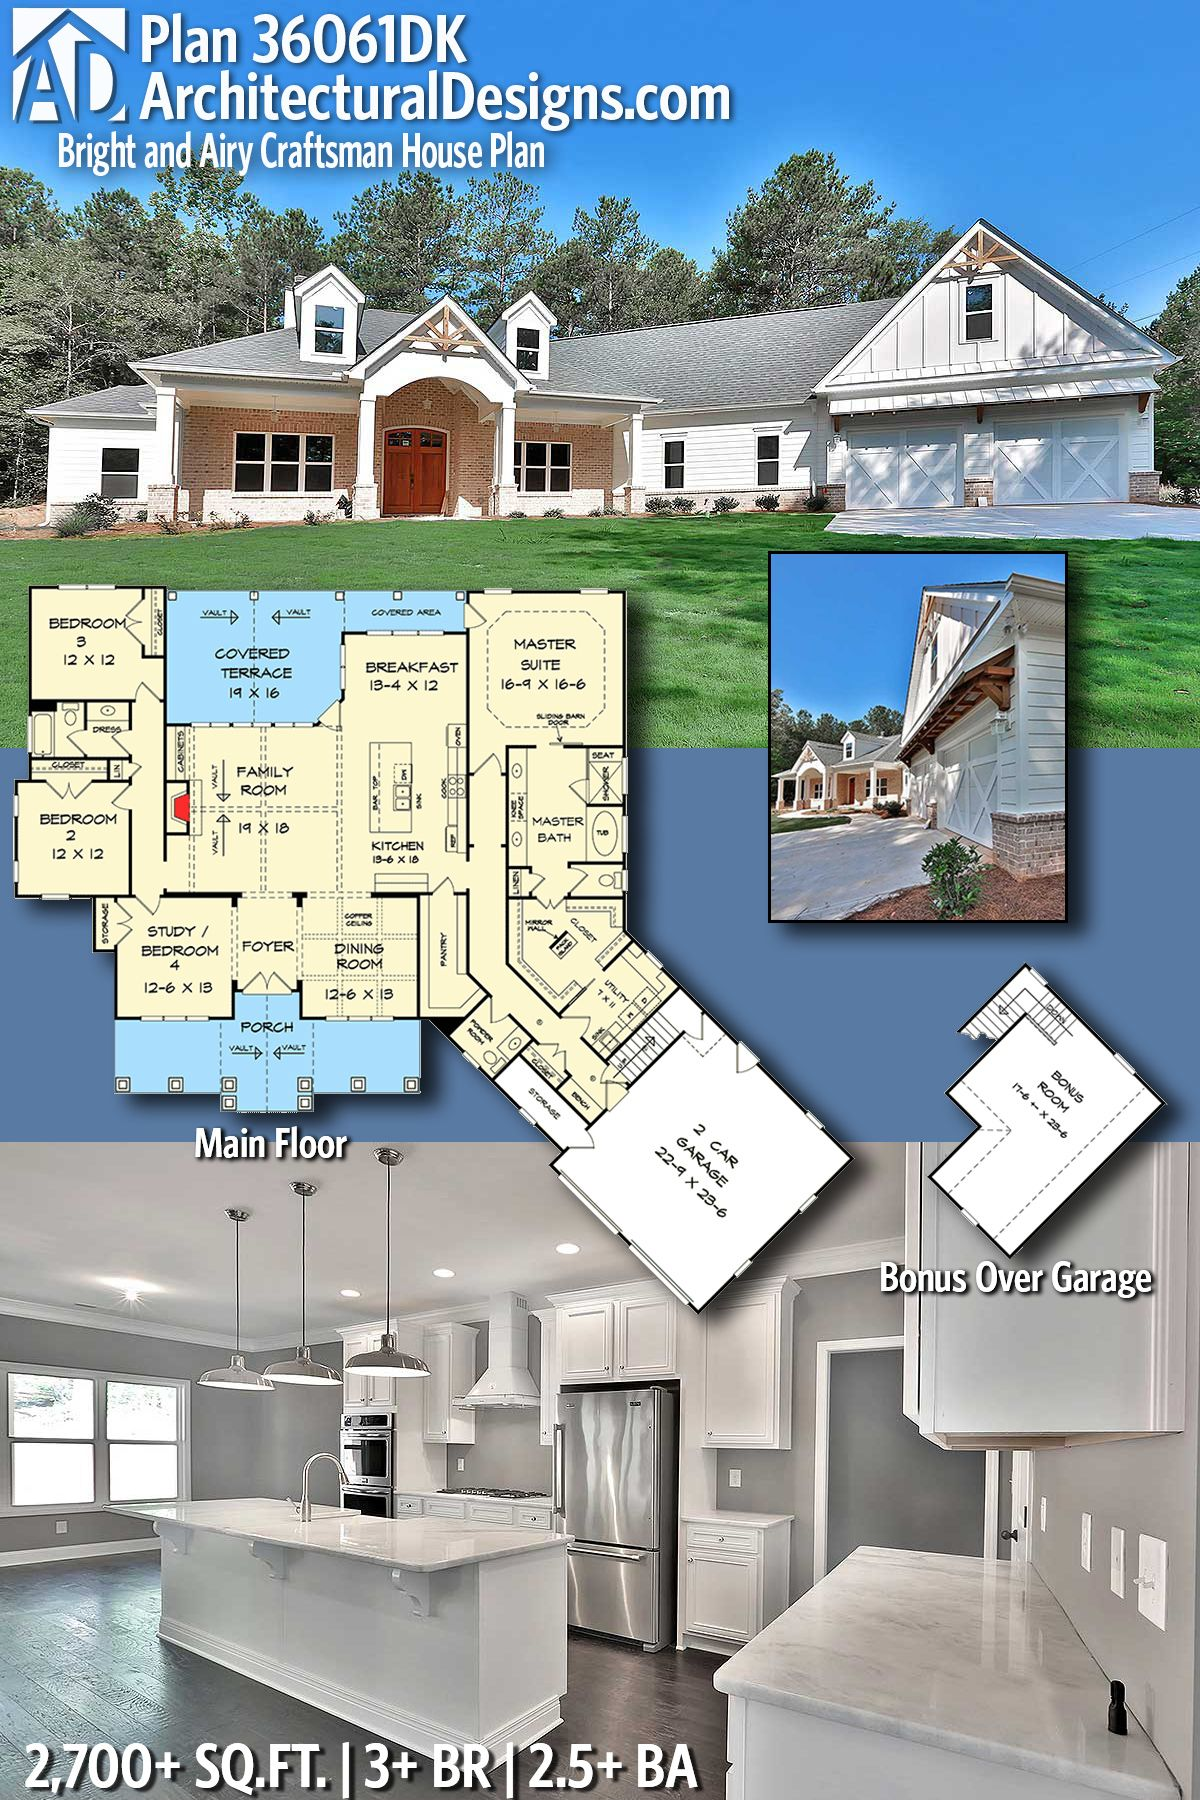 Architectural designs craftsman house plan dk has beds baths square feet of heated living space ready when you are also bright and airy in my kind rh pinterest